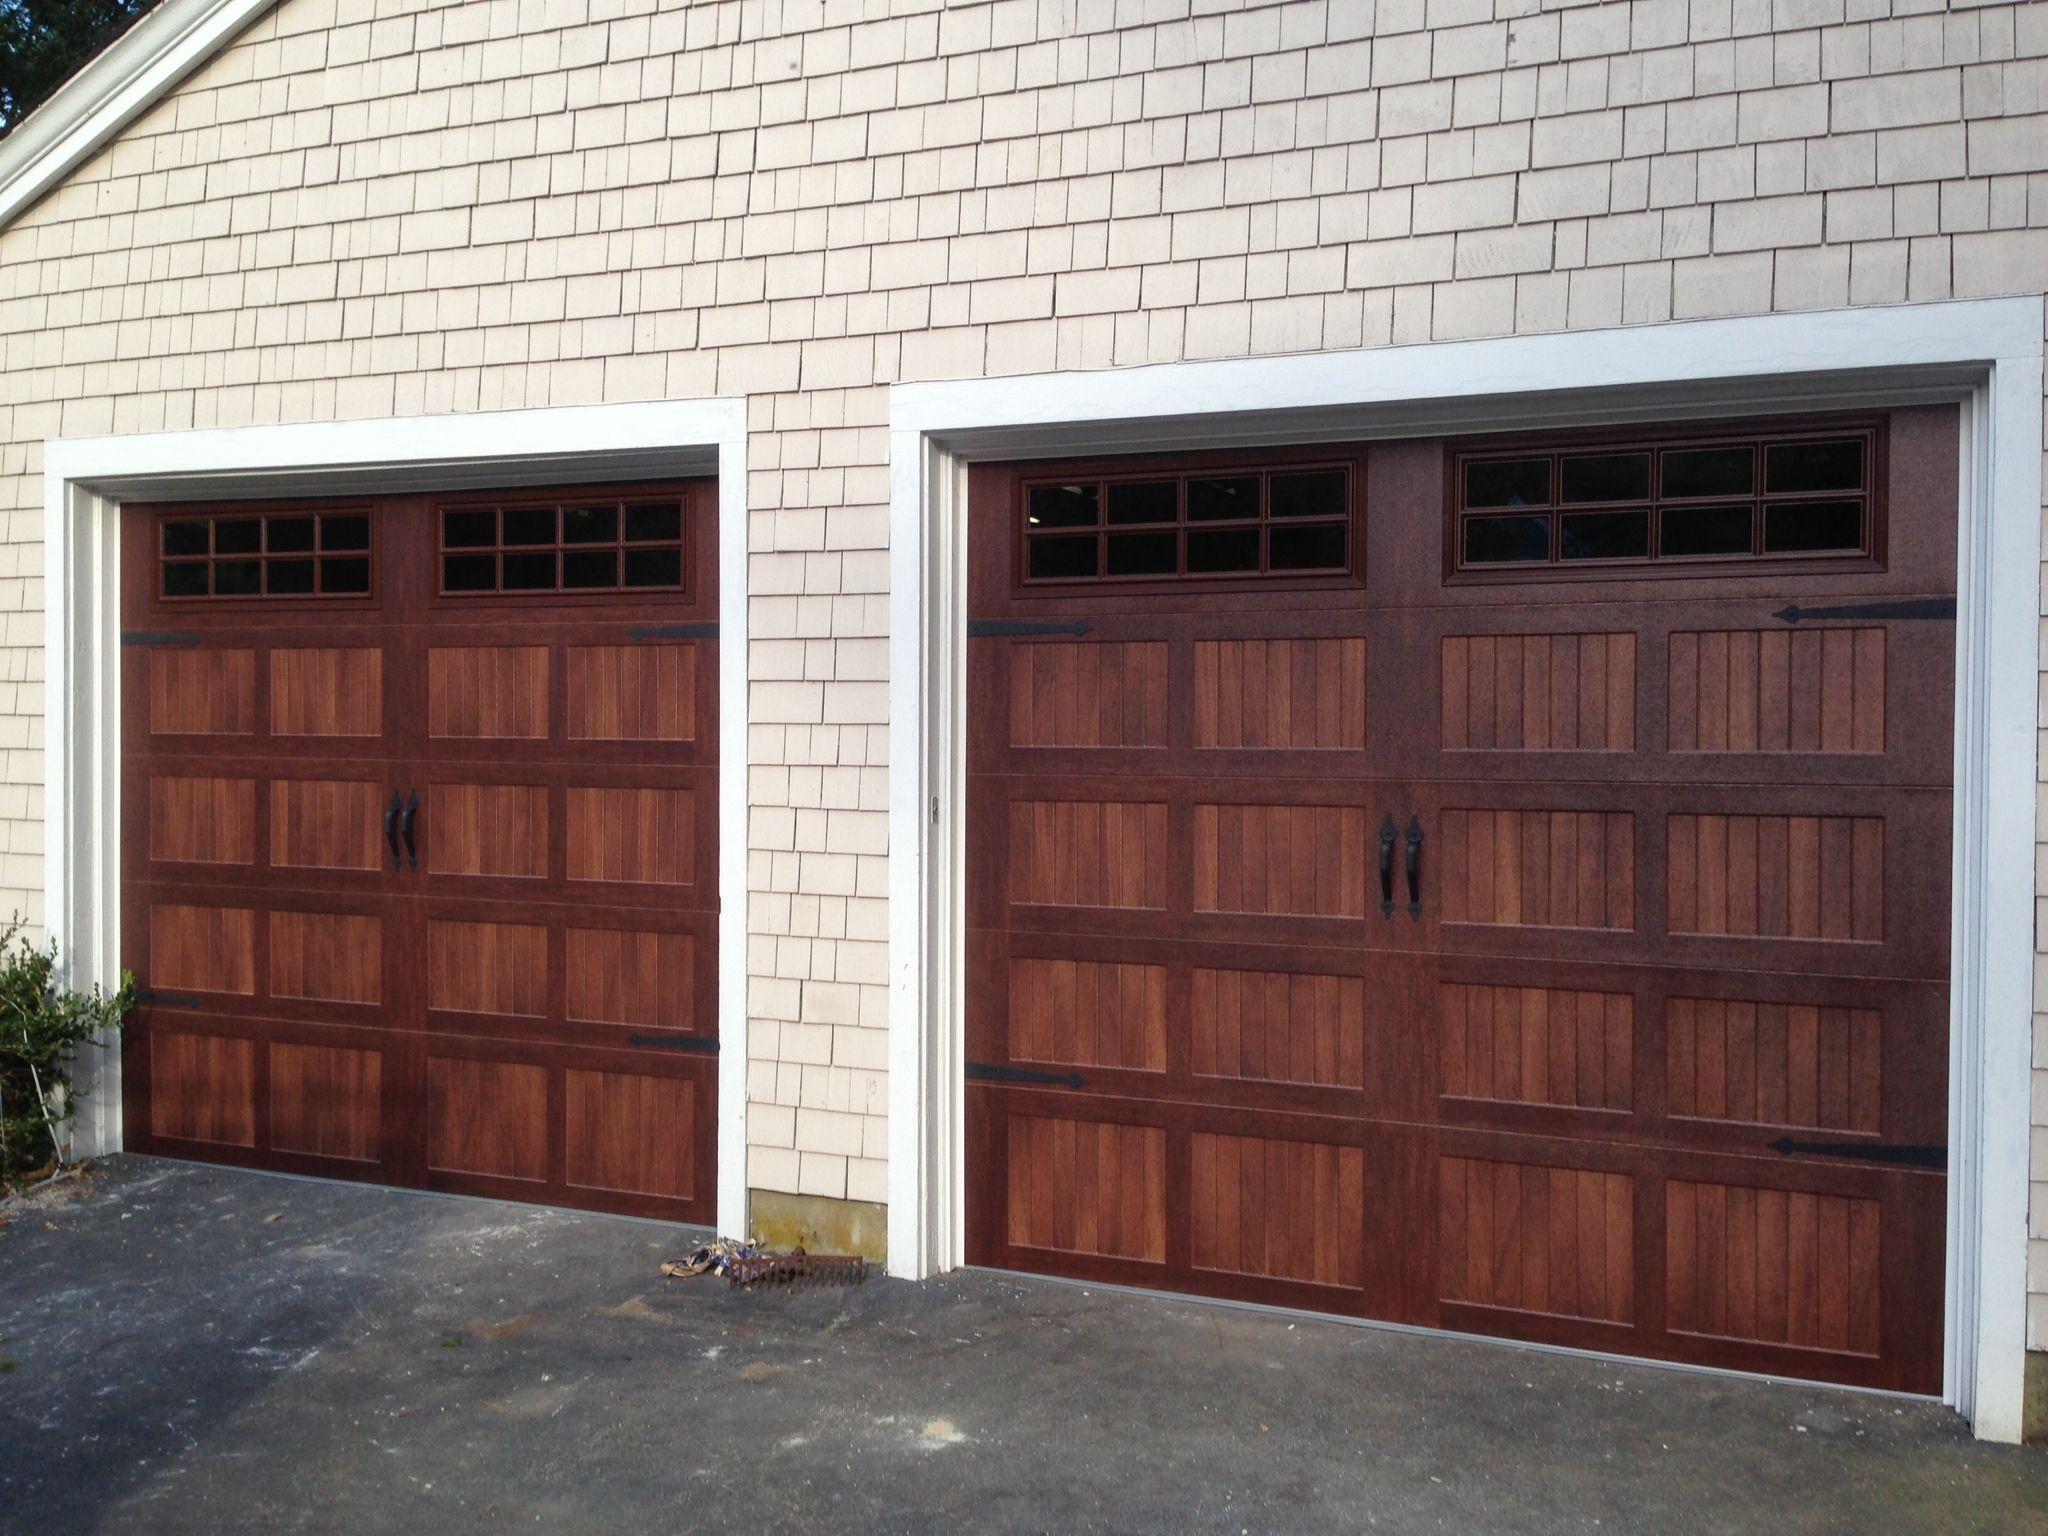 1536 #663A34 Garage Door Maintenance Metal Garages Wood Garage Doors Modern Garage  save image Stylish Garage Doors 37872048